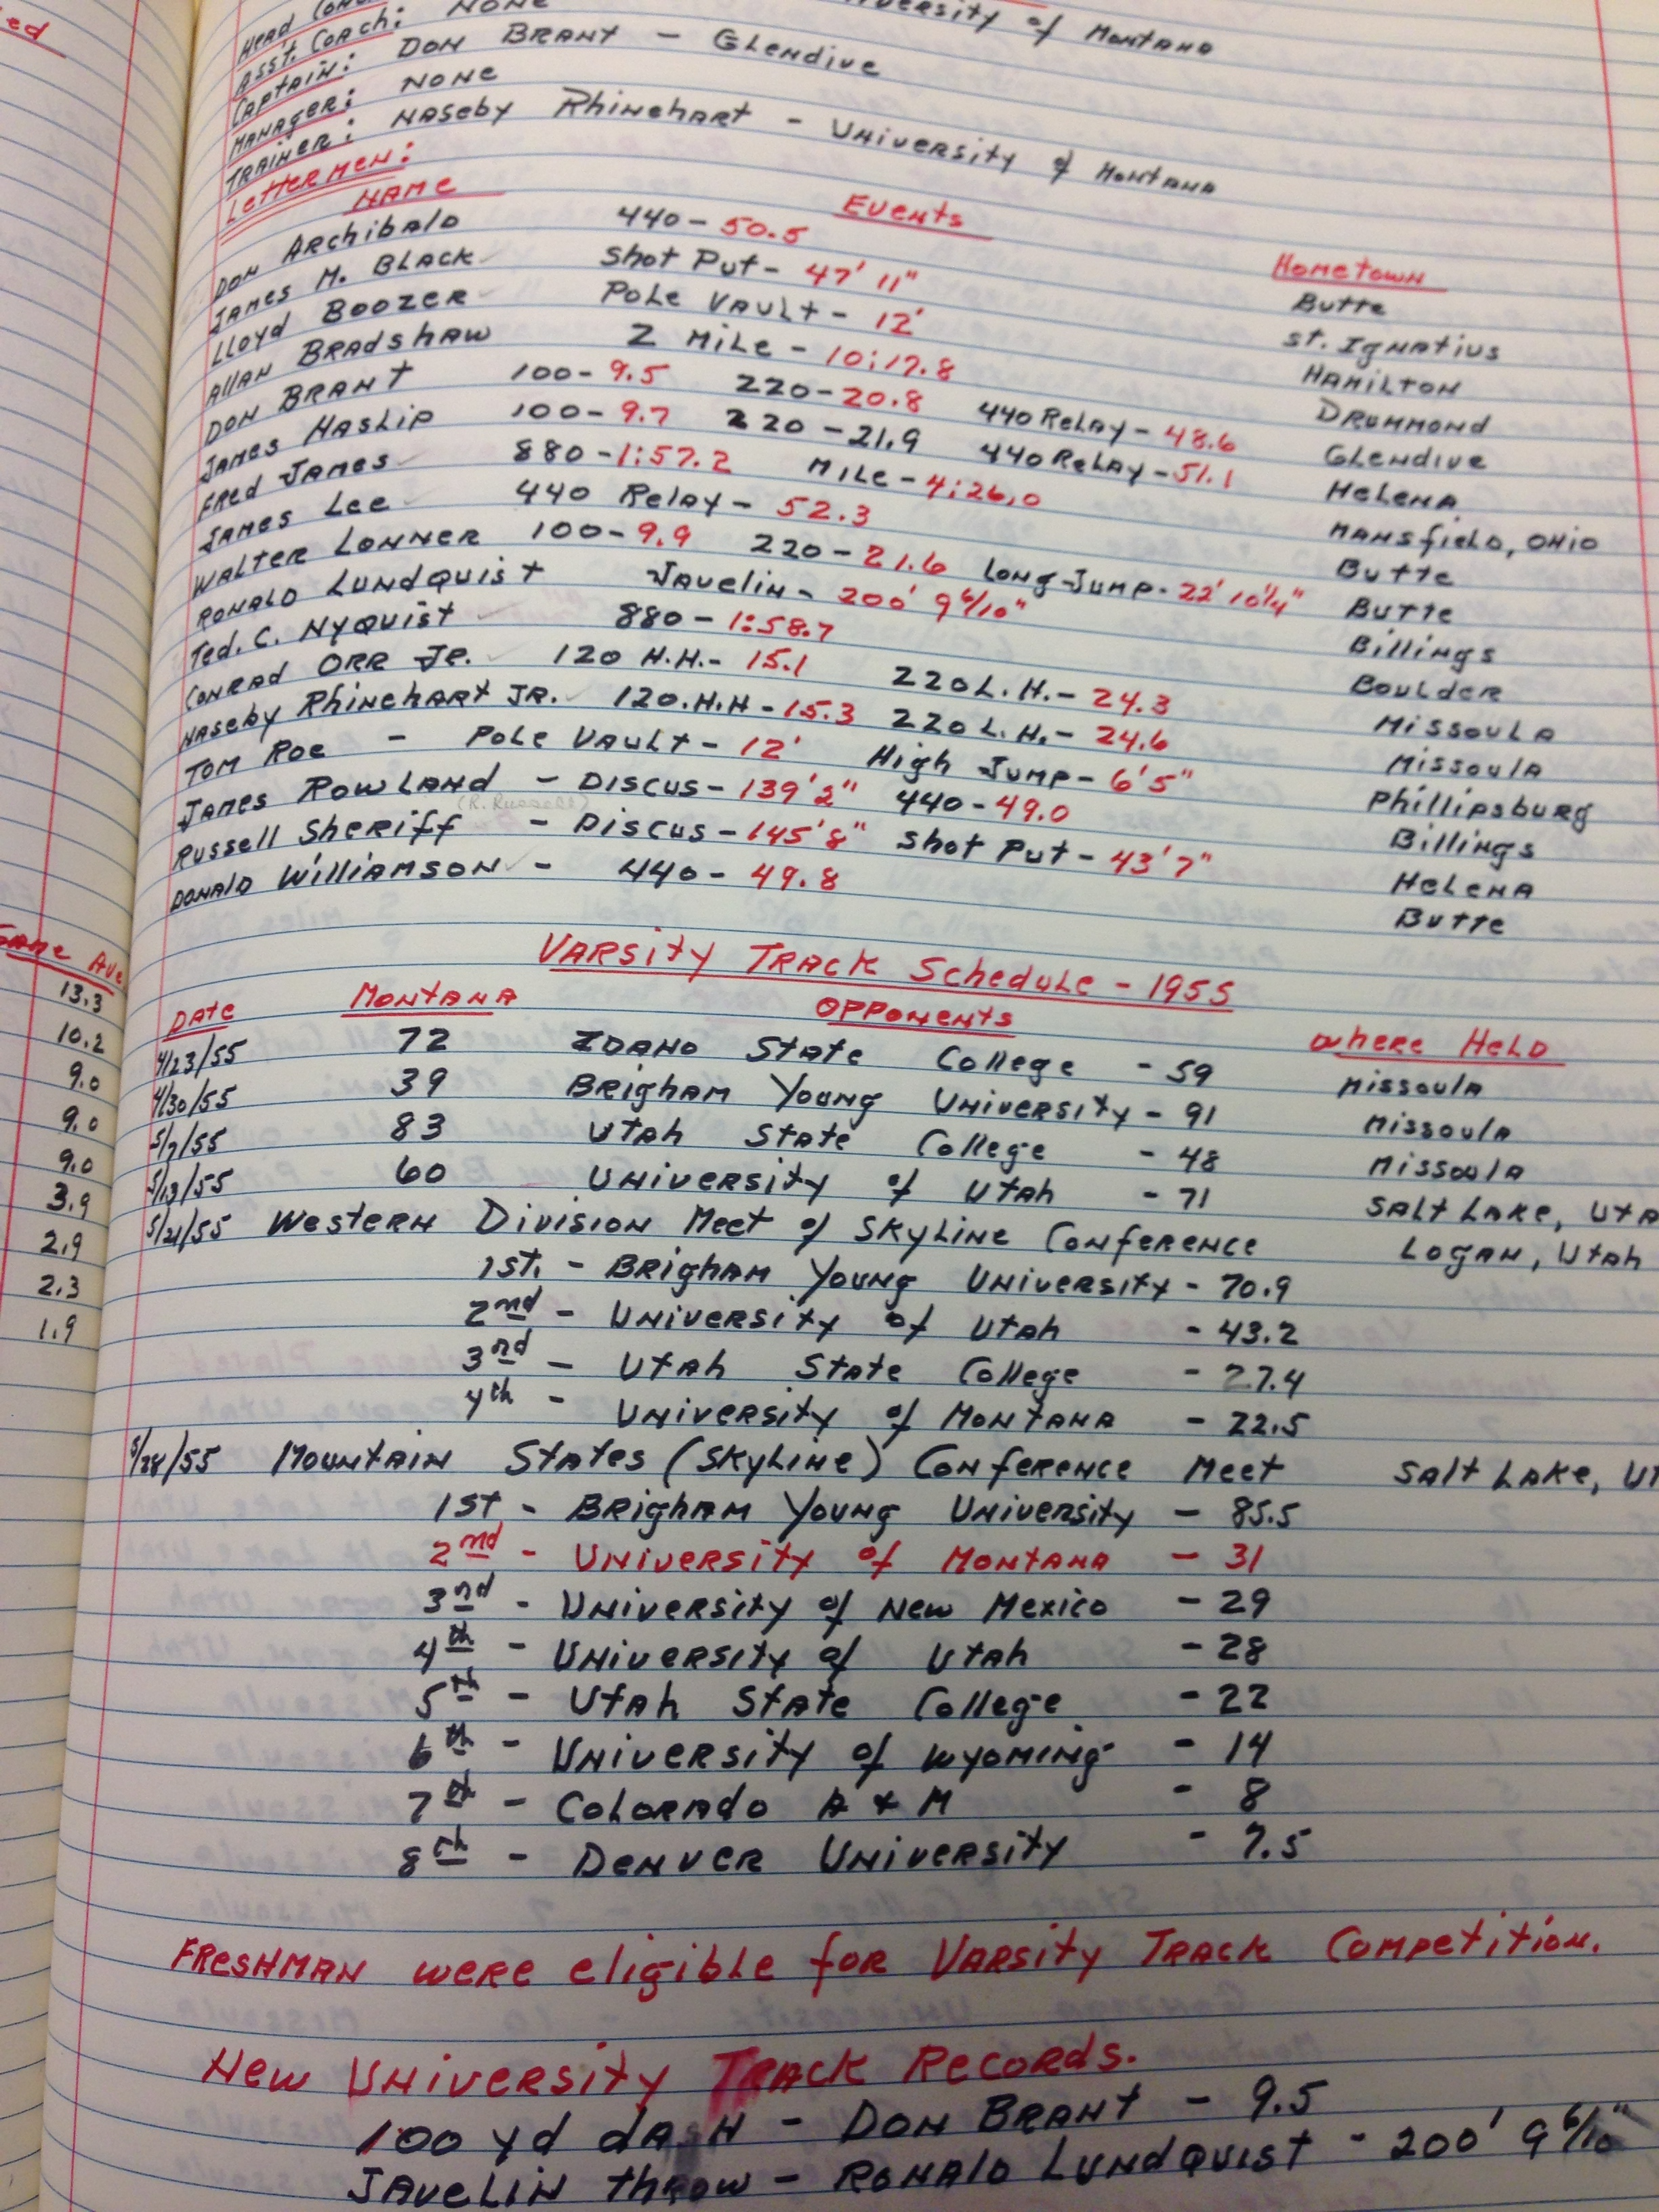 Jiggs Dahlberg filled up around 1,000 pages just like this of Grizzly Athletics history in the Red Book.